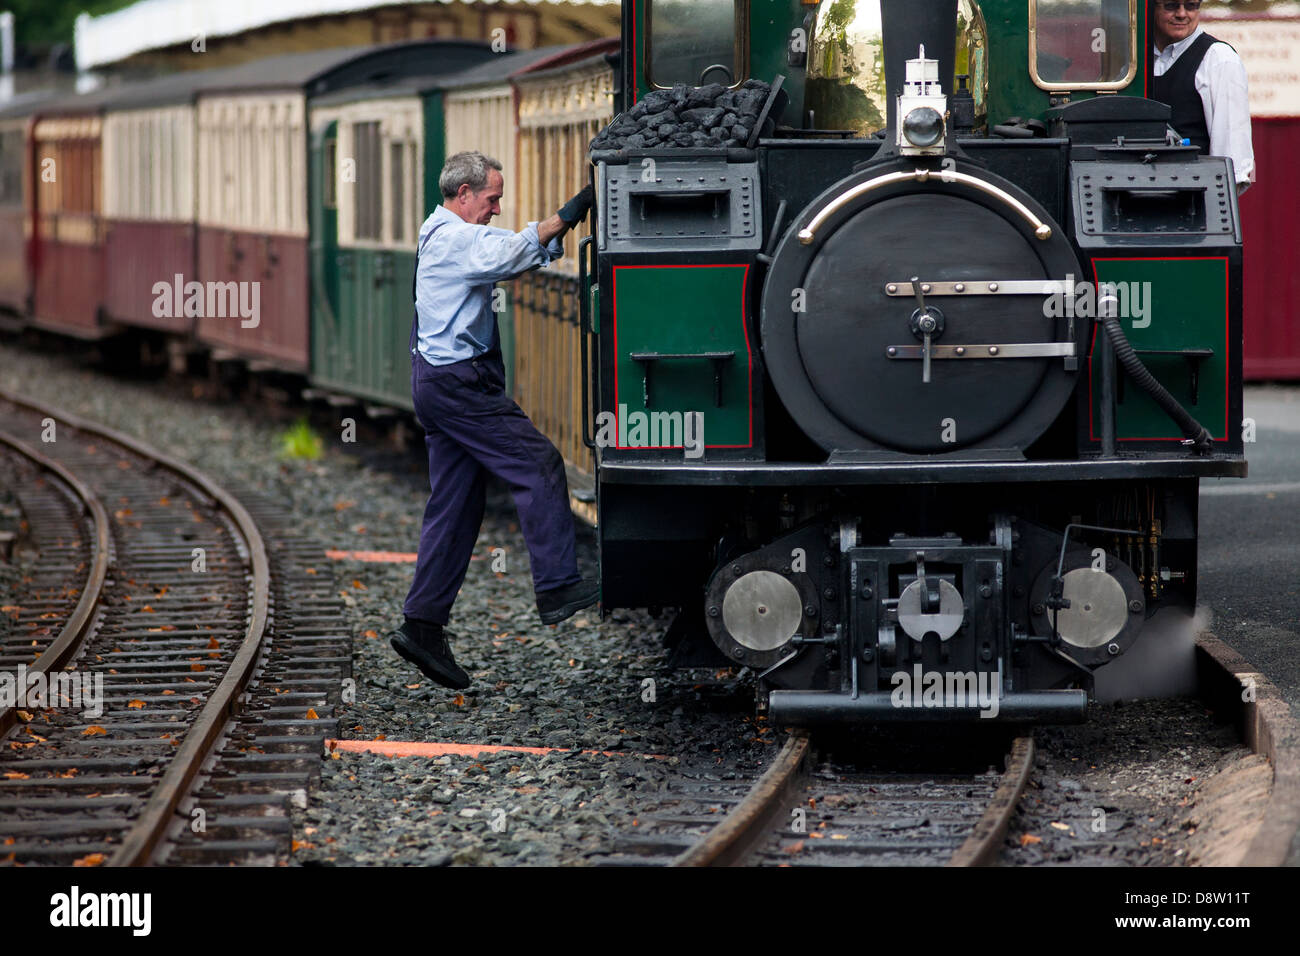 The fireman climbs onto the steam engine of Ffestiniog Railway, a historical steam railway operated from Wales - Stock Image